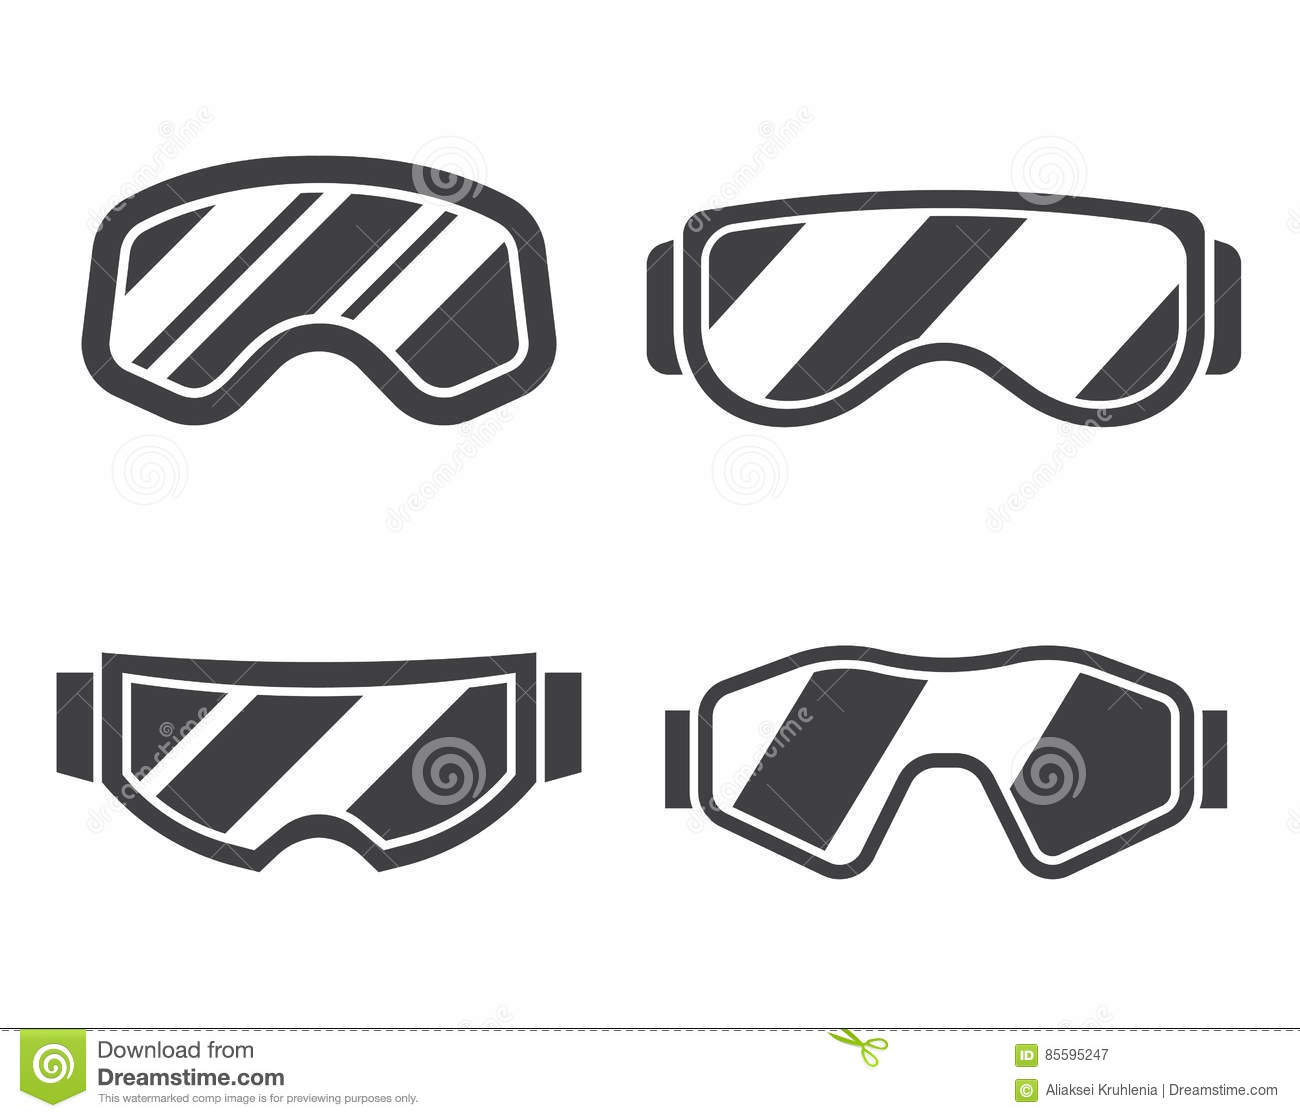 bb8e48fed7fb Snowboard or ski goggles silhouette collection in flat design. Skiing or  snowboarding face protection glasses outline vector icon. Winter sport  goggle set ...